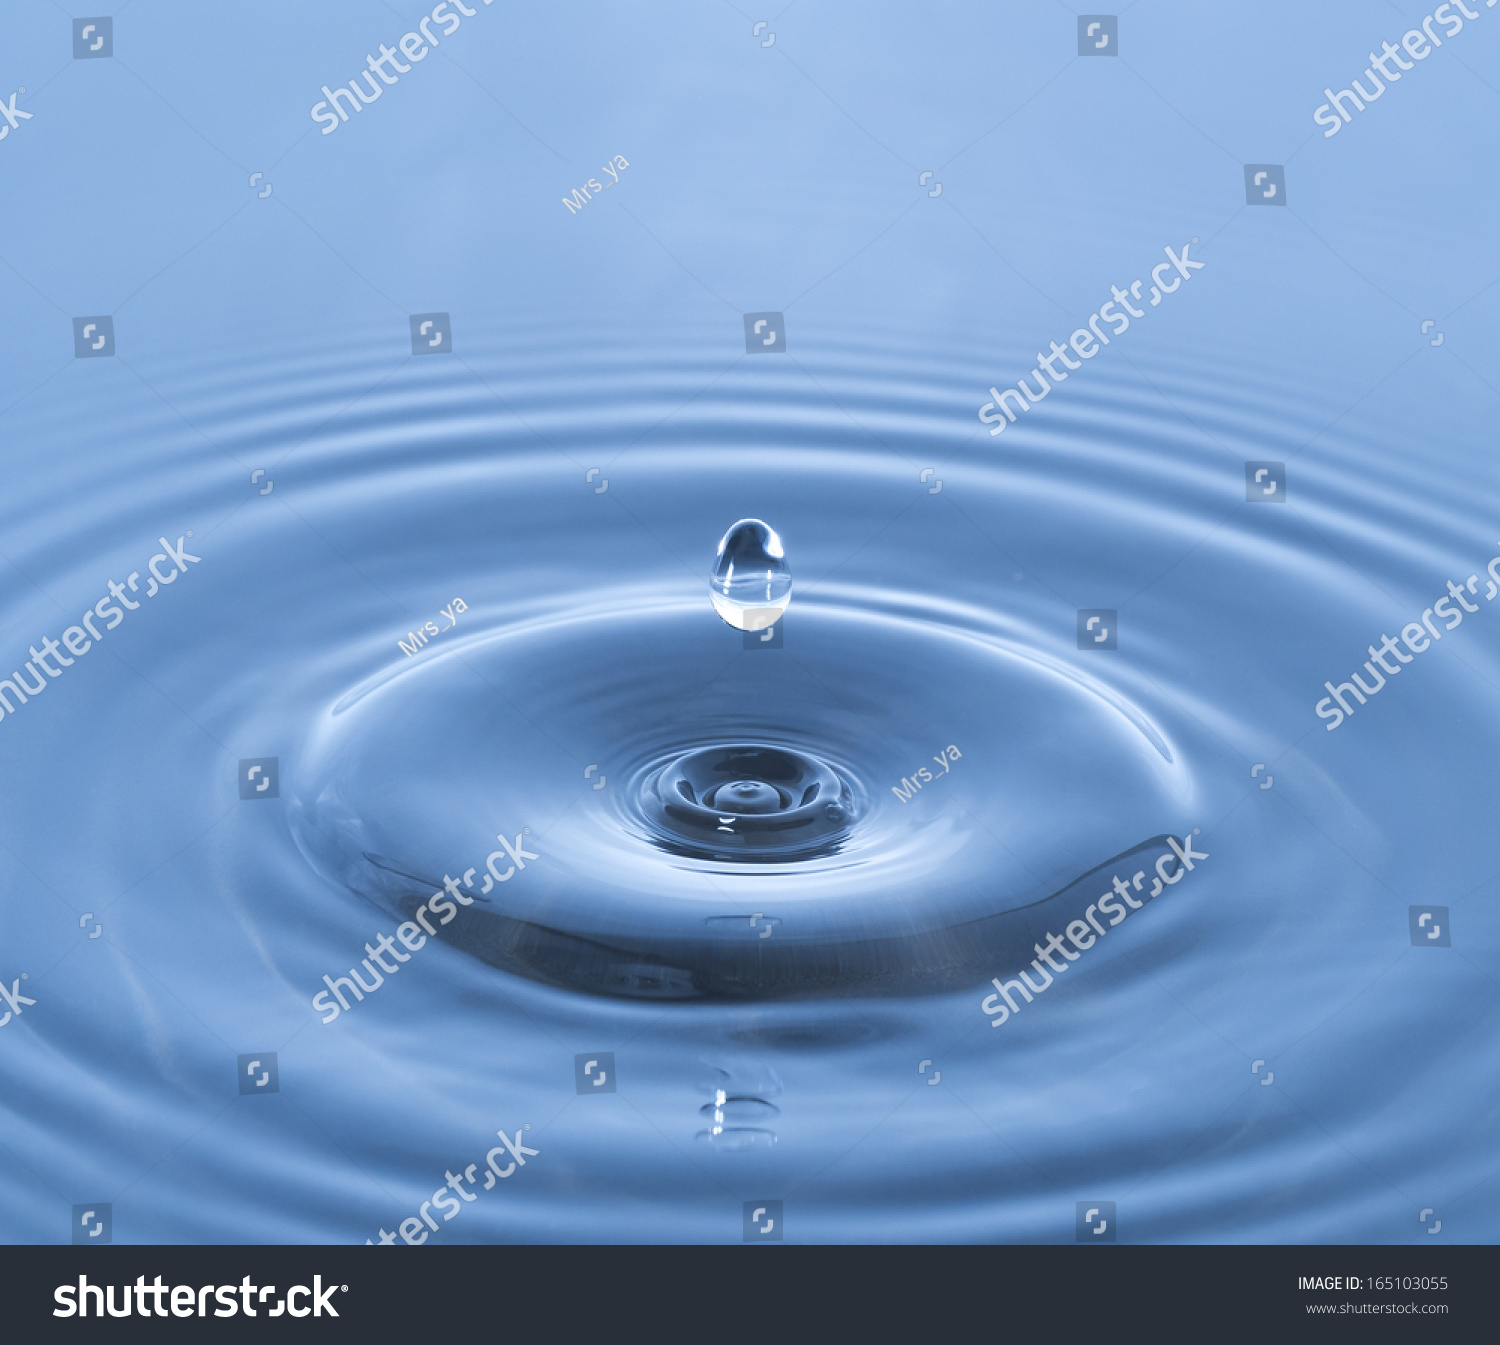 Stop Motion Of Droplet On Water Surface Creating Wave Pattern Spread